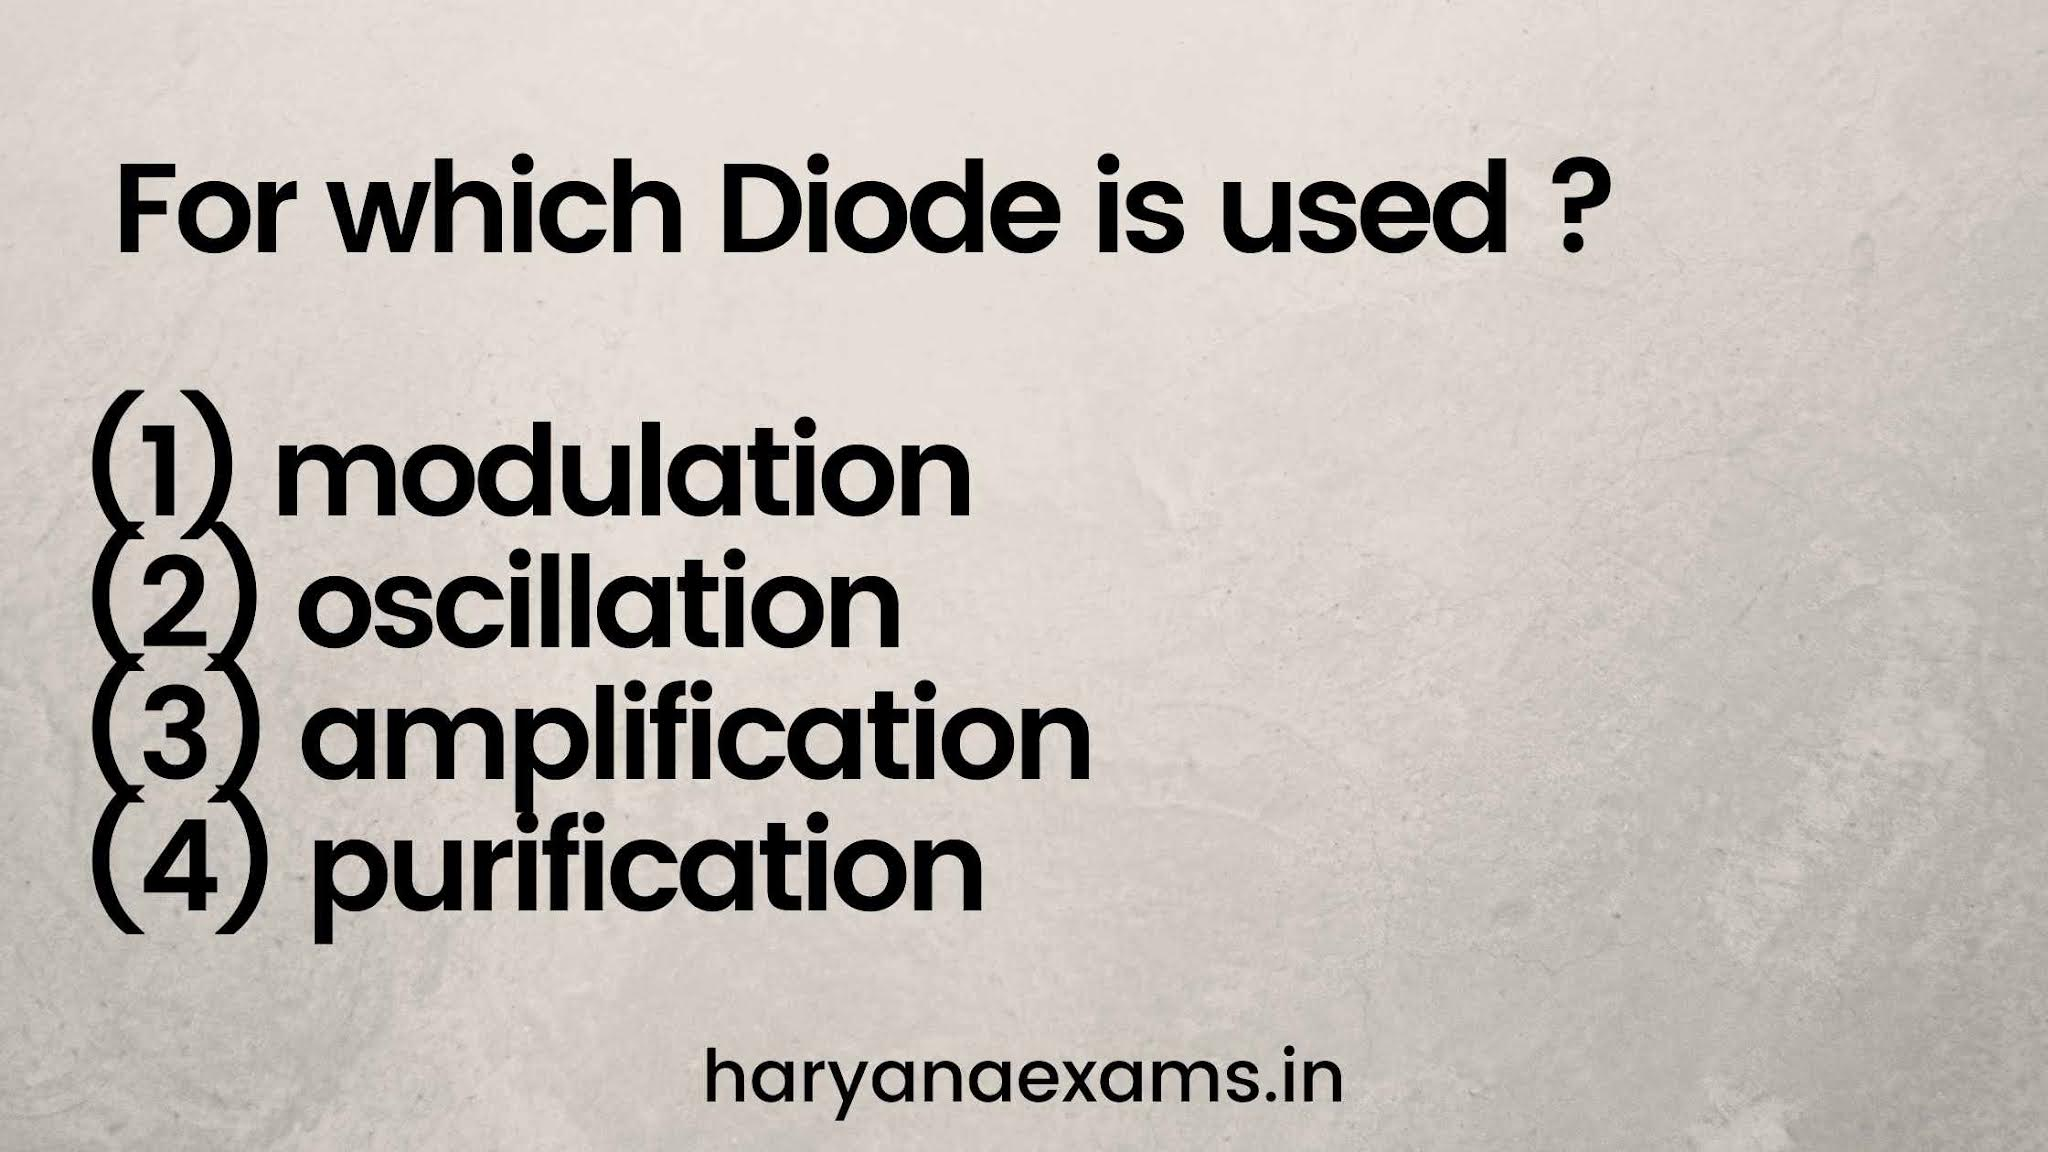 For which Diode is used?  (1) modulation (2) oscillation (3) amplification (4) purification